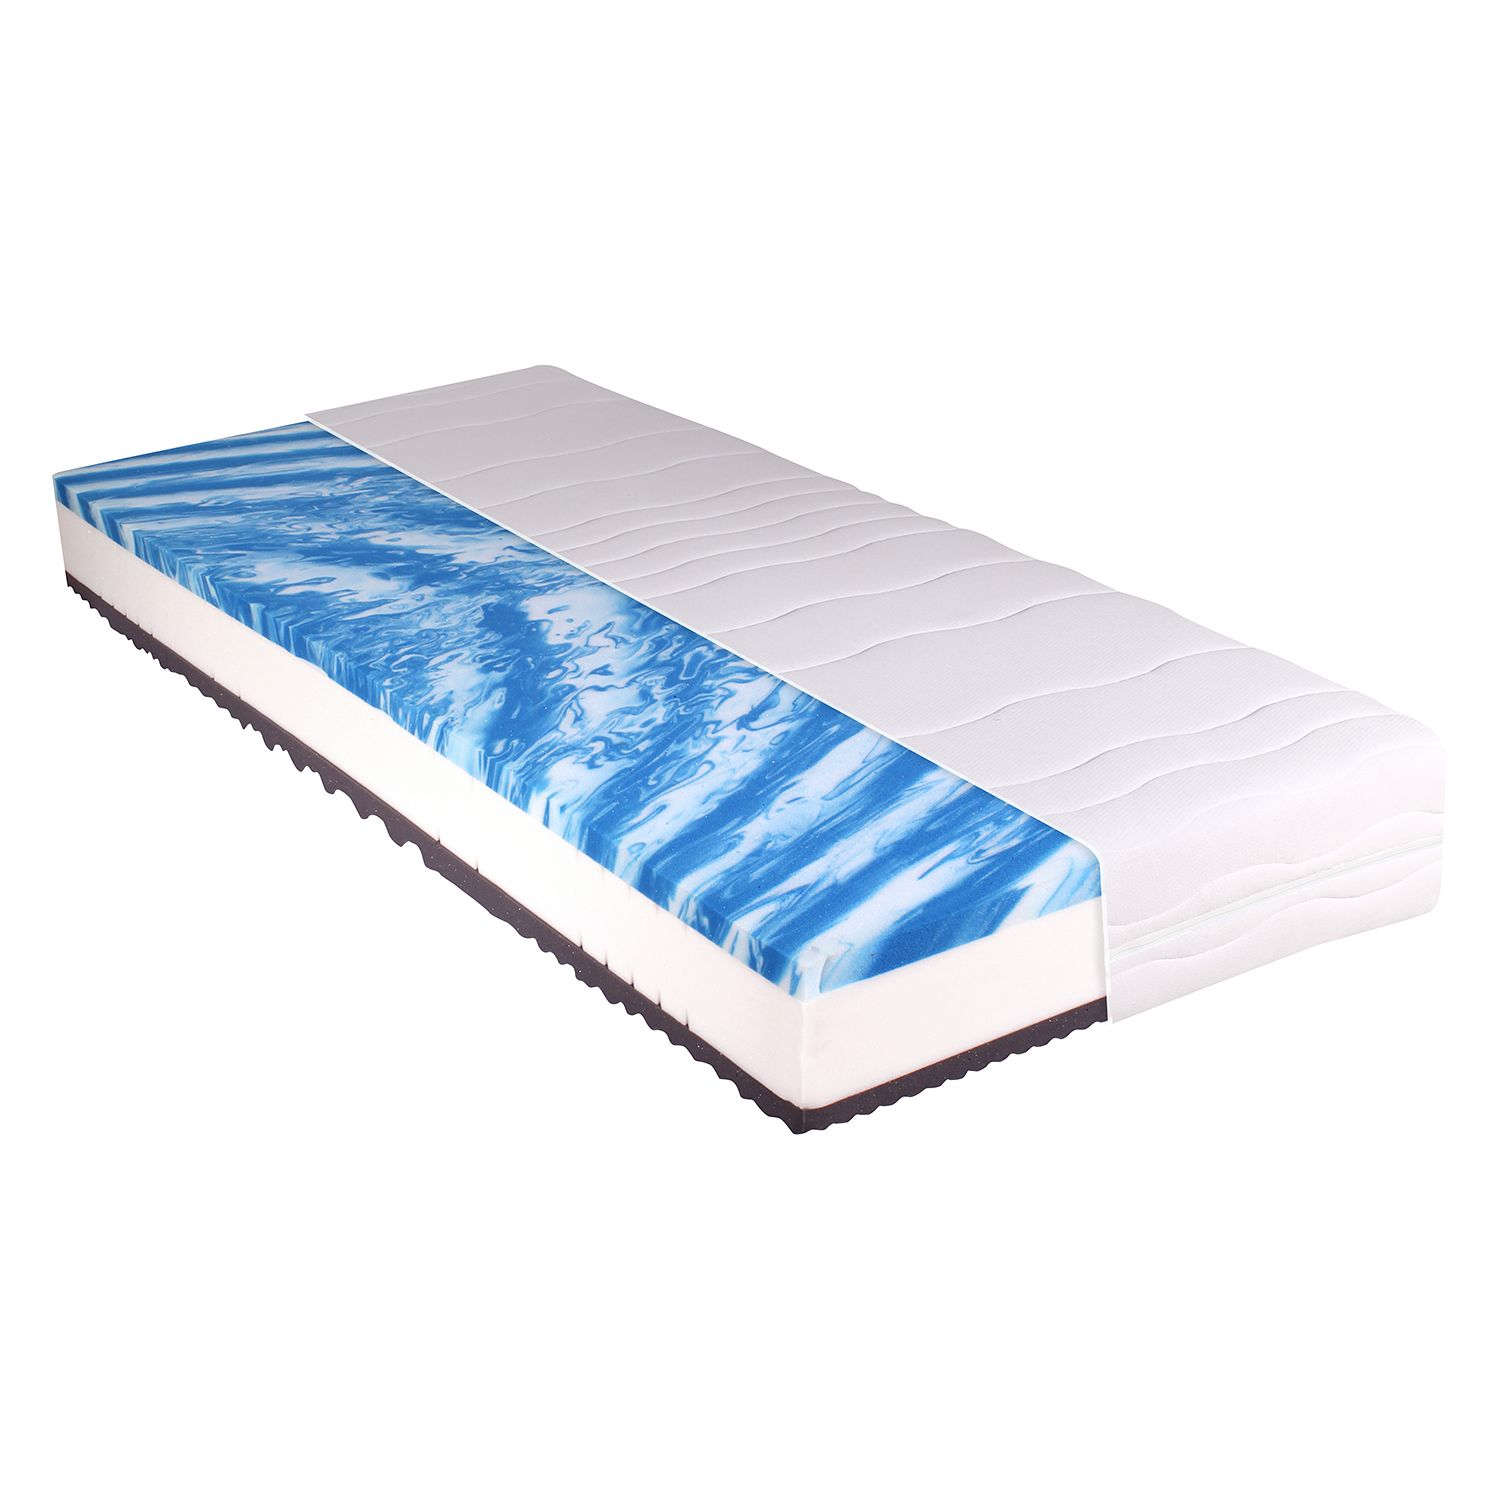 Matelas en mousse gel confort 7 zones